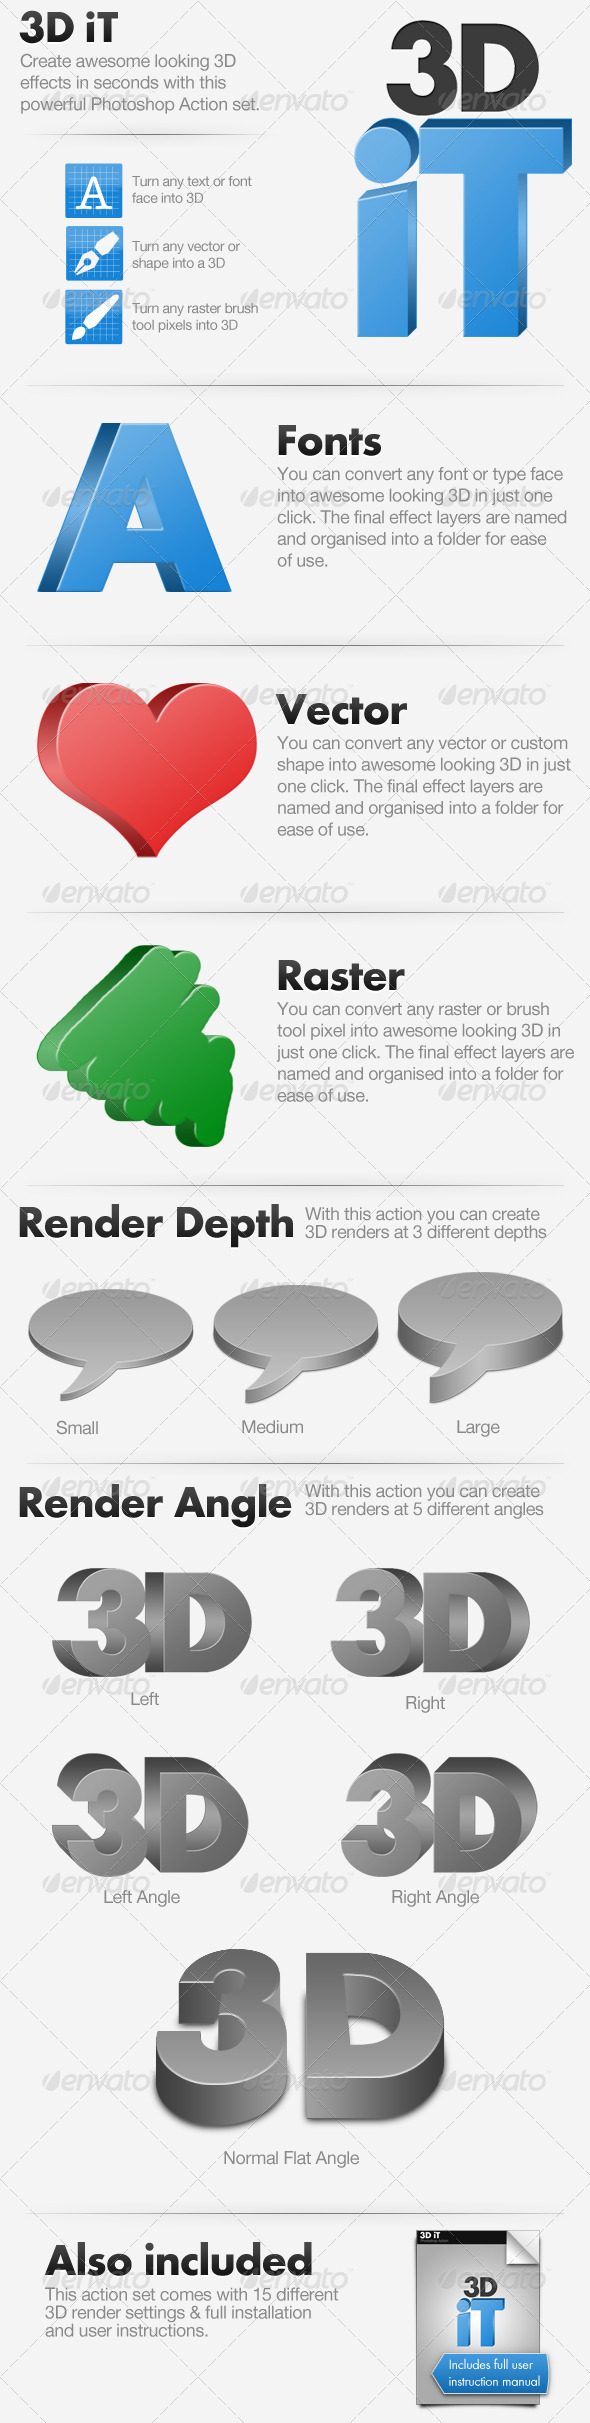 GraphicRiver 3D iT 15 3D Rendering Actions 120931